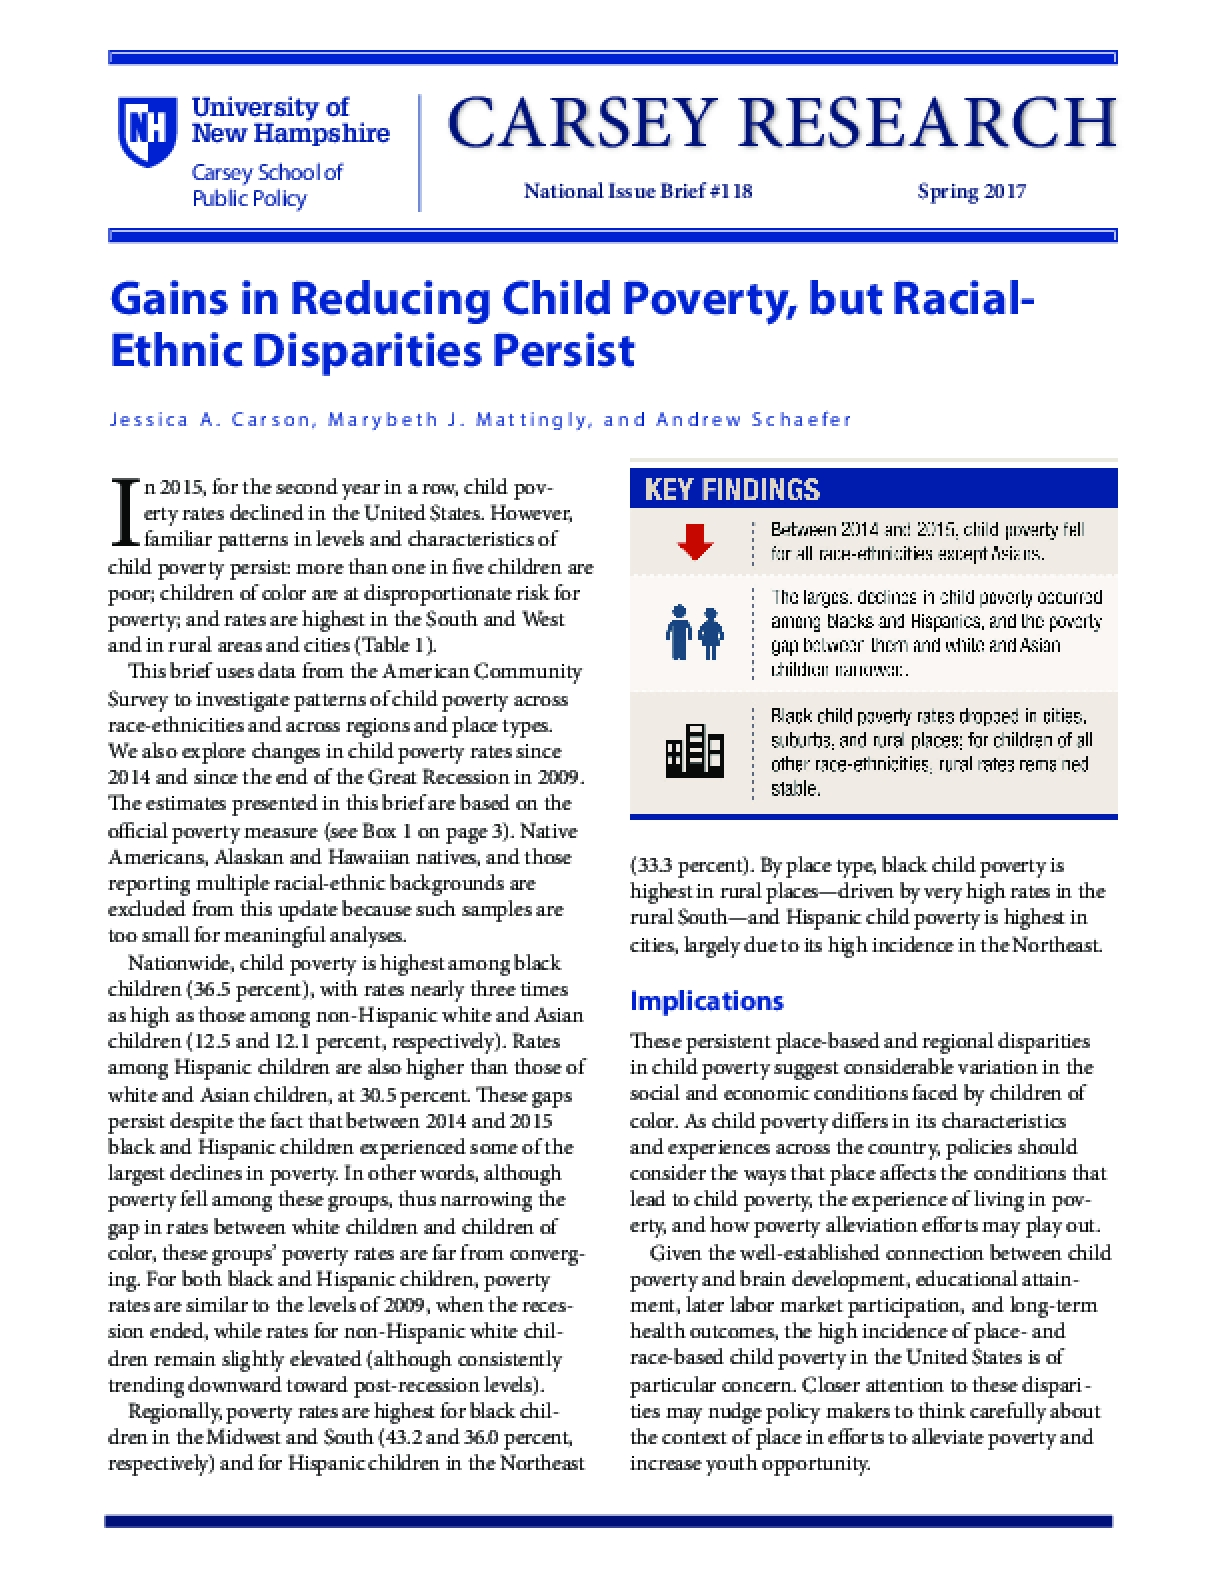 Gains in Reducing Child Poverty, but Racial-Ethnic Disparities Persist